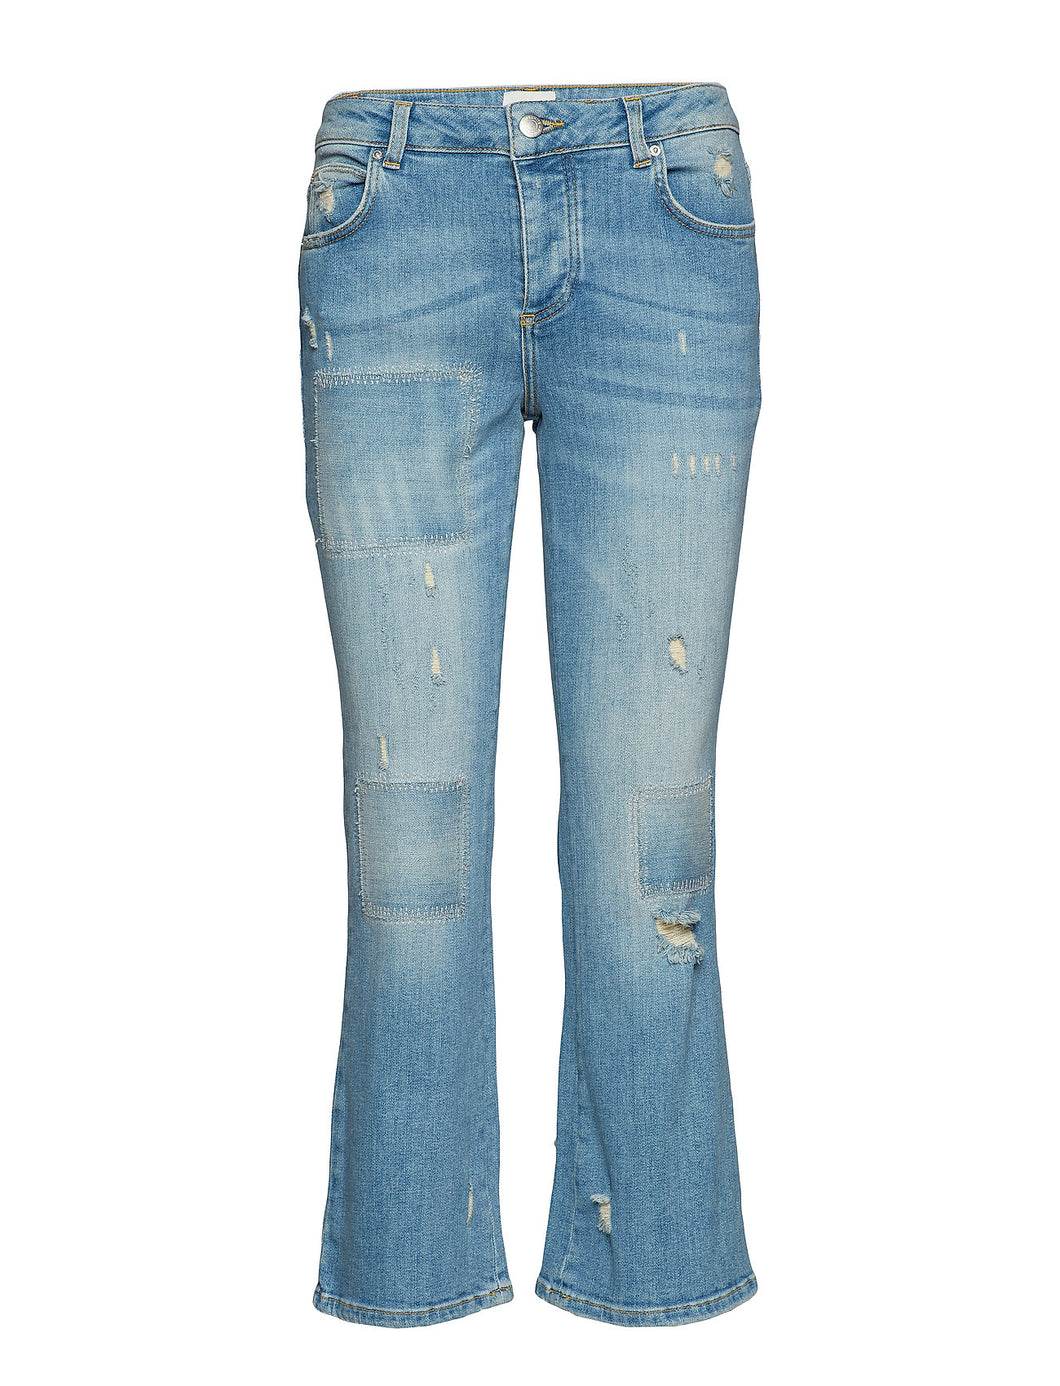 Irina Jean LIGHT BLUE - NOW $197